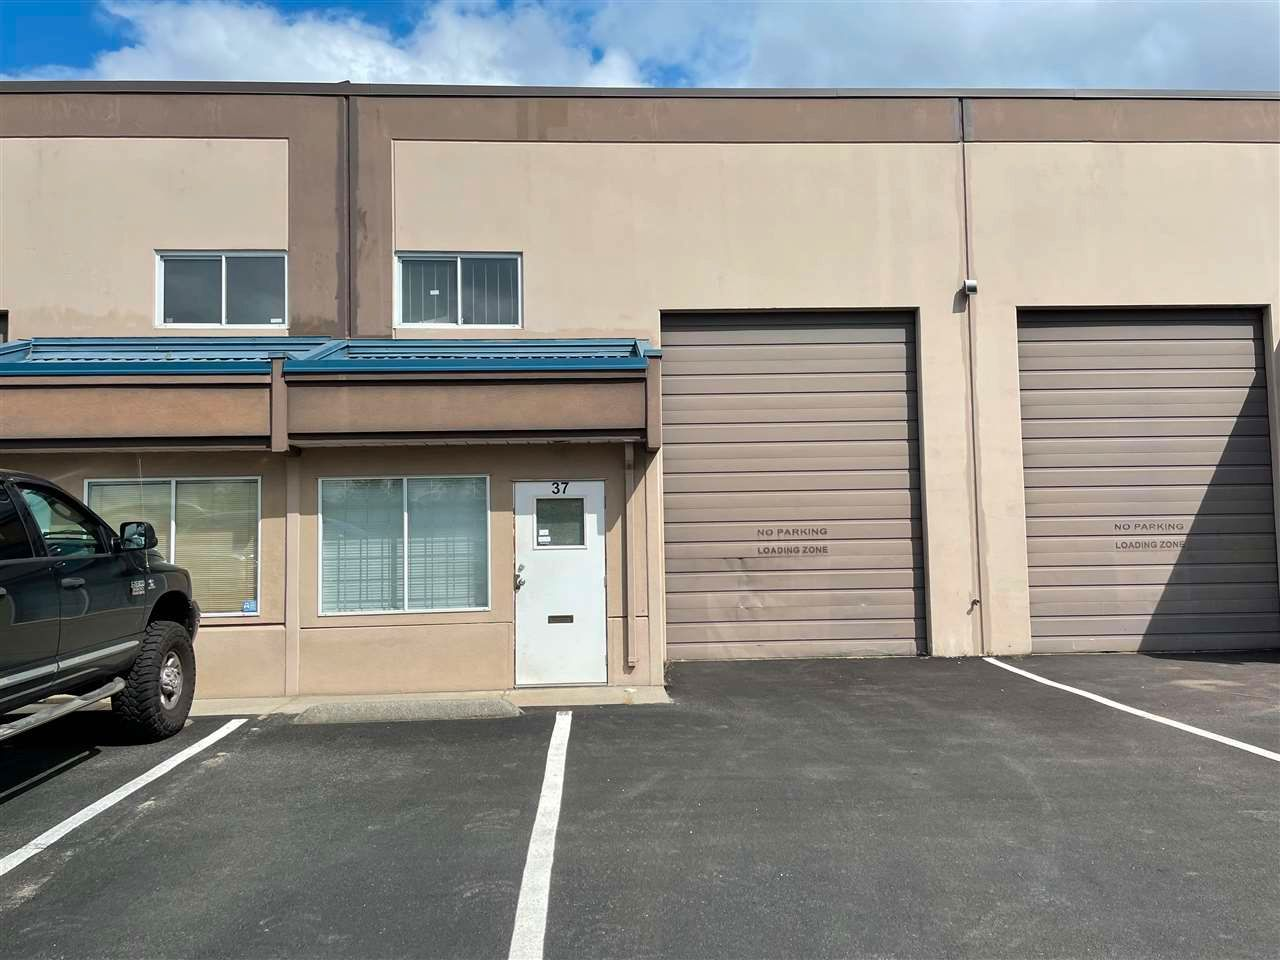 Main Photo: 37 32929 MISSION Way in Mission: Mission BC Industrial for sale : MLS®# C8038566